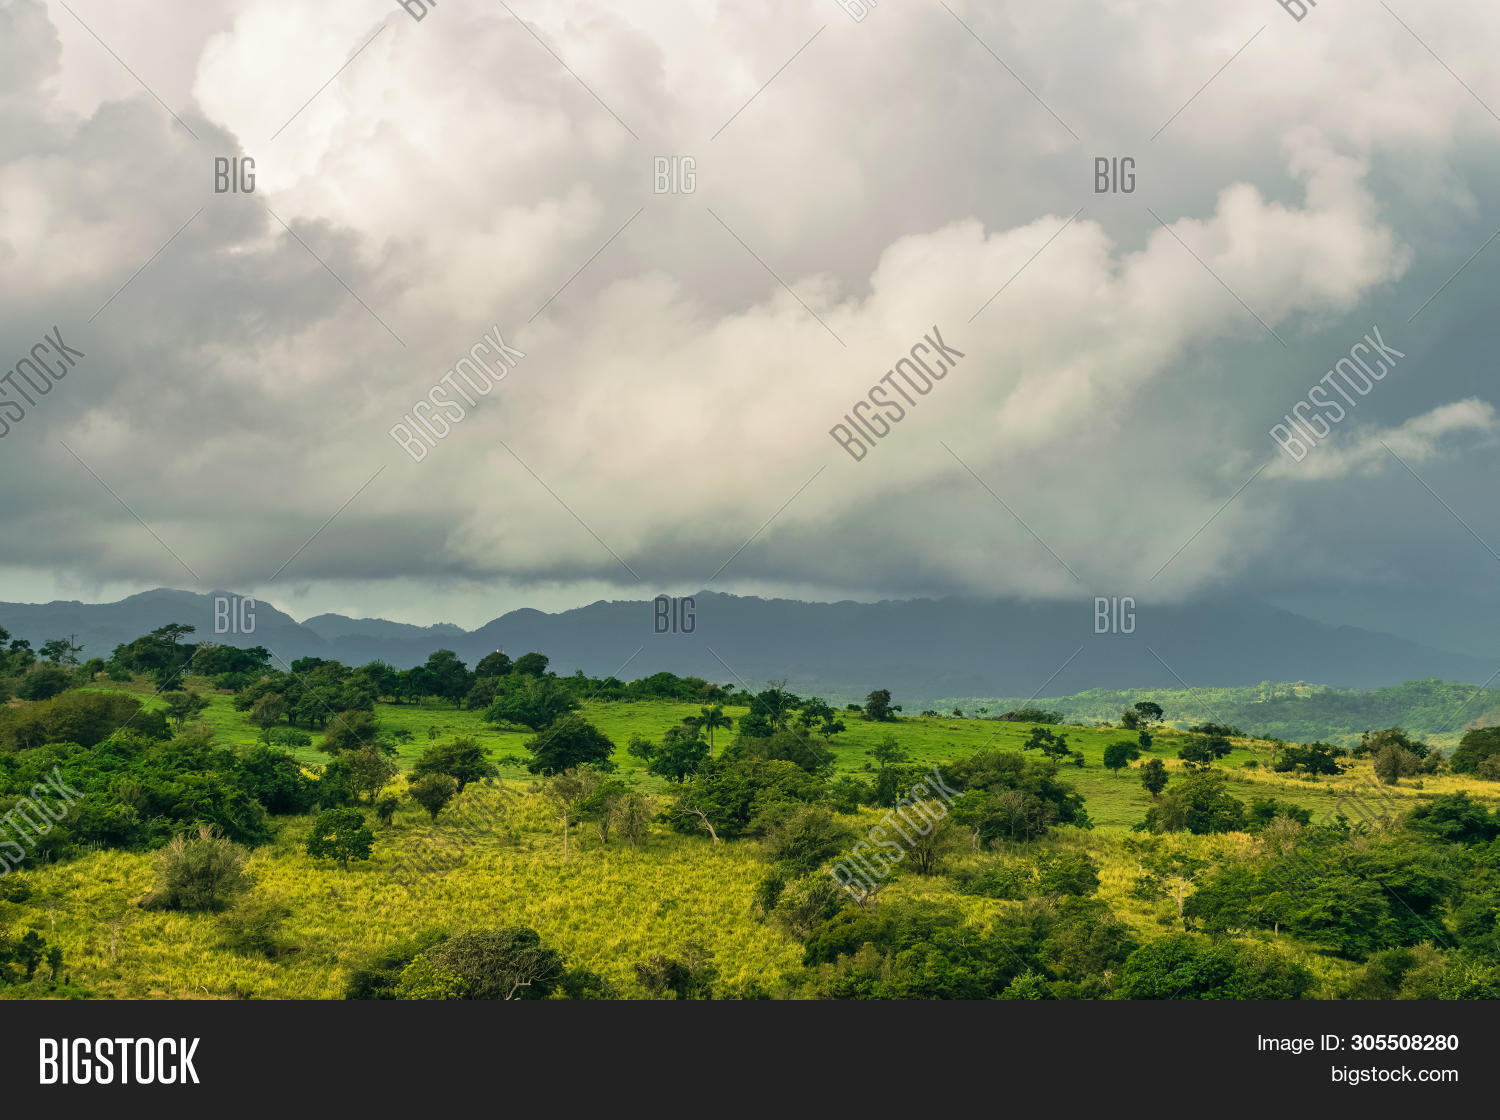 background,bright,climate,clouds,daylight,dominican,dramatic,environment,flora,flow,fog,foliage,forest,green,haze,hill,jungle,landscape,leaf,light,looking,lush,motion,mountain,natural,nature,outdoor,peaceful,rain,rainforest,republic,rural,scenery,sky,storm,stunning,tranquil,tranquility,travel,tree,tropical,tropics,valley,vegetation,vibrant,view,vivid,walk,wild